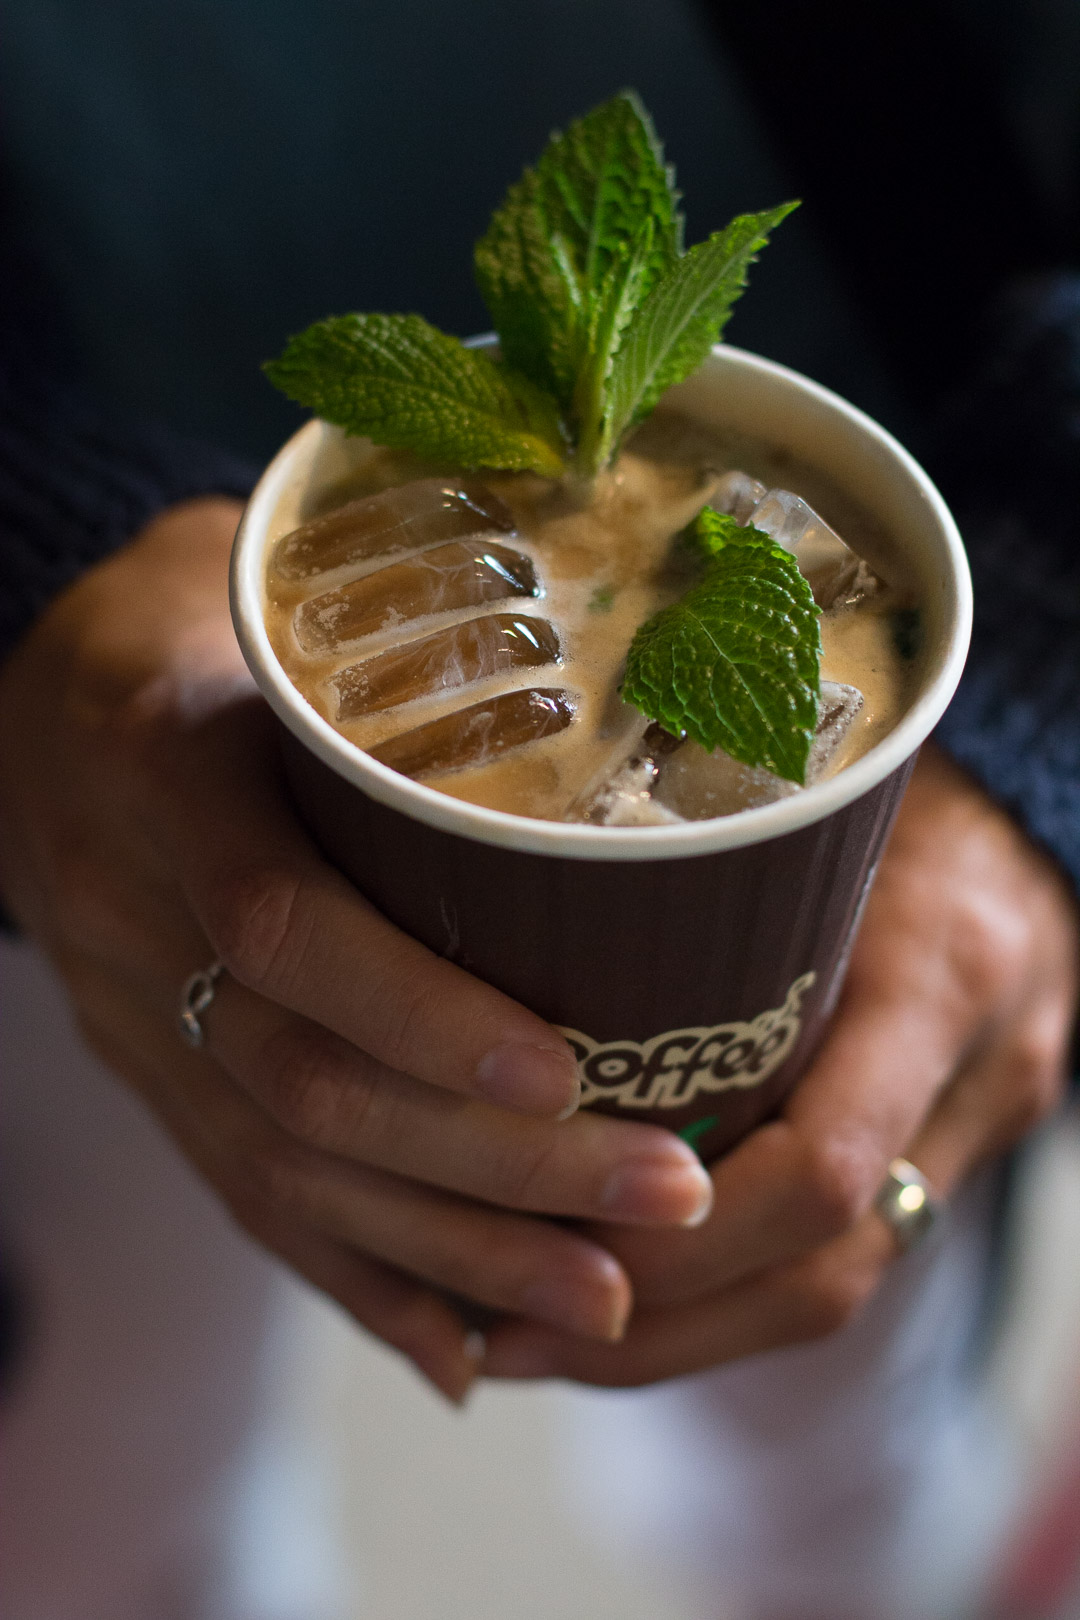 Hands holding a paper coffee cup filled with ice, mint leaves, and foamy coffee.